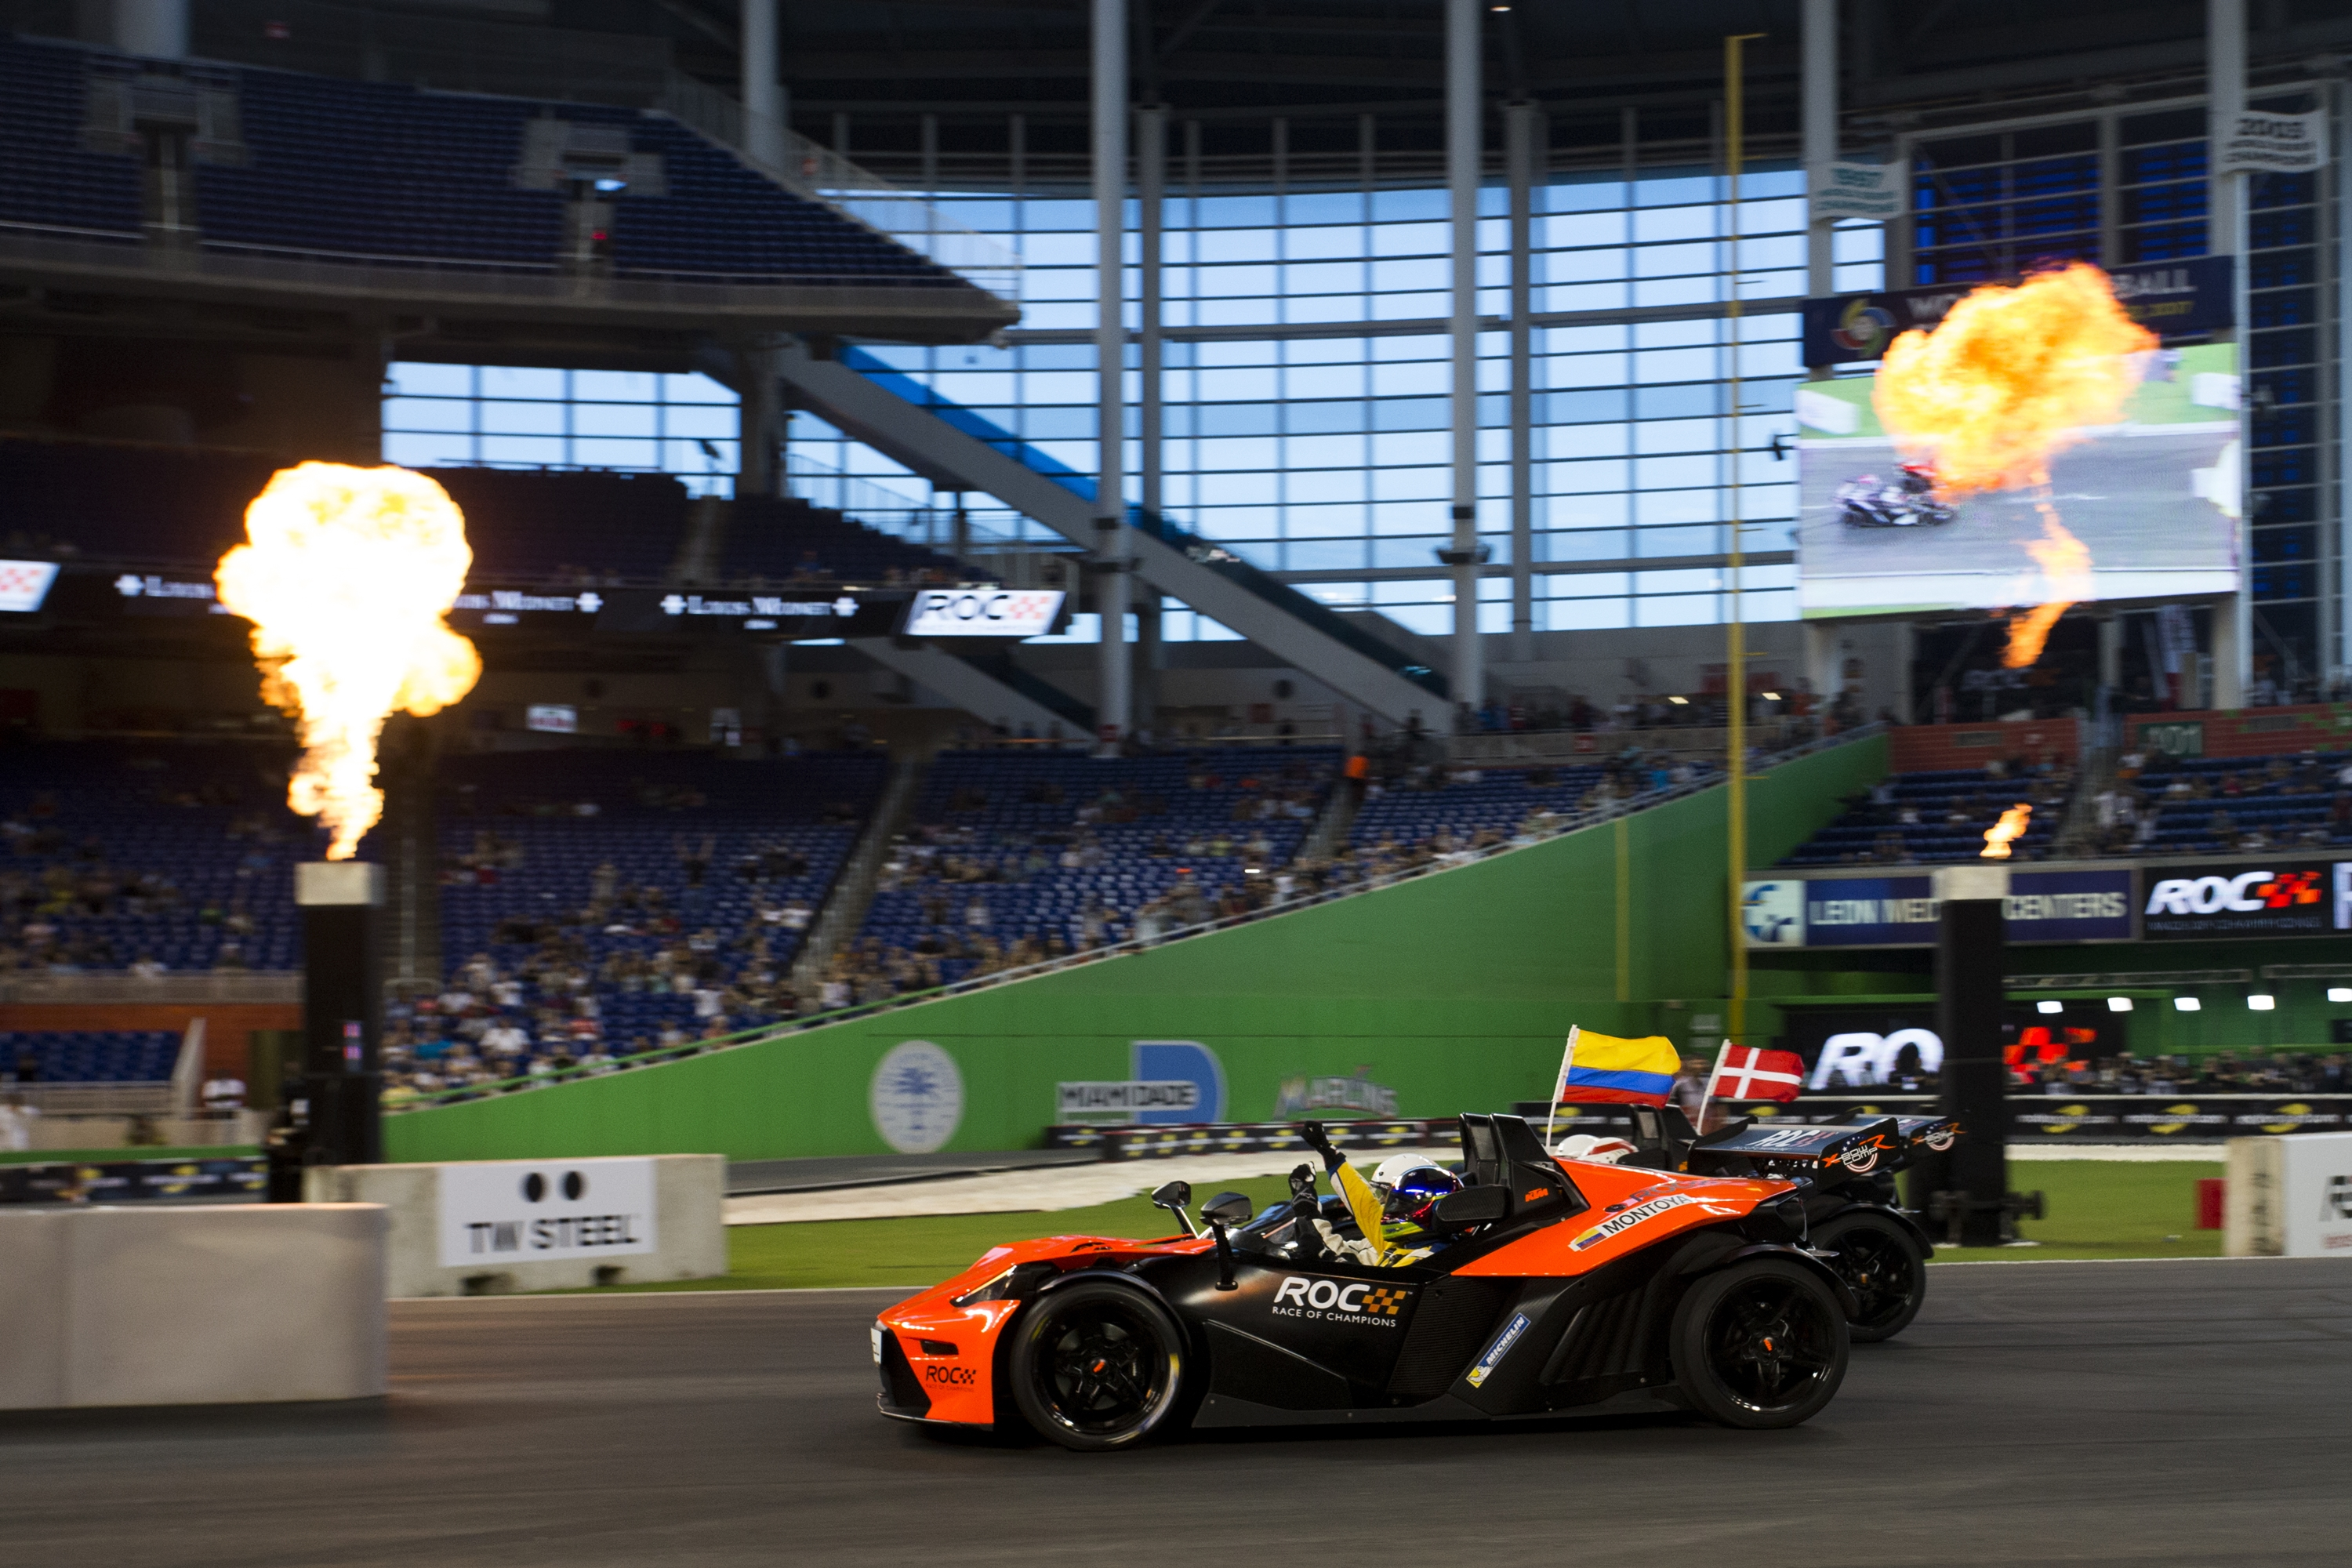 juan-pablo_montoya_col_beats_tom_kristensen_dnk_across_the_line_driving_the_ktm_x-bow_comp_r_to_be_crowned_the_champion_of_champions_during_the_race_of_champions_on_saturday_2.JPG